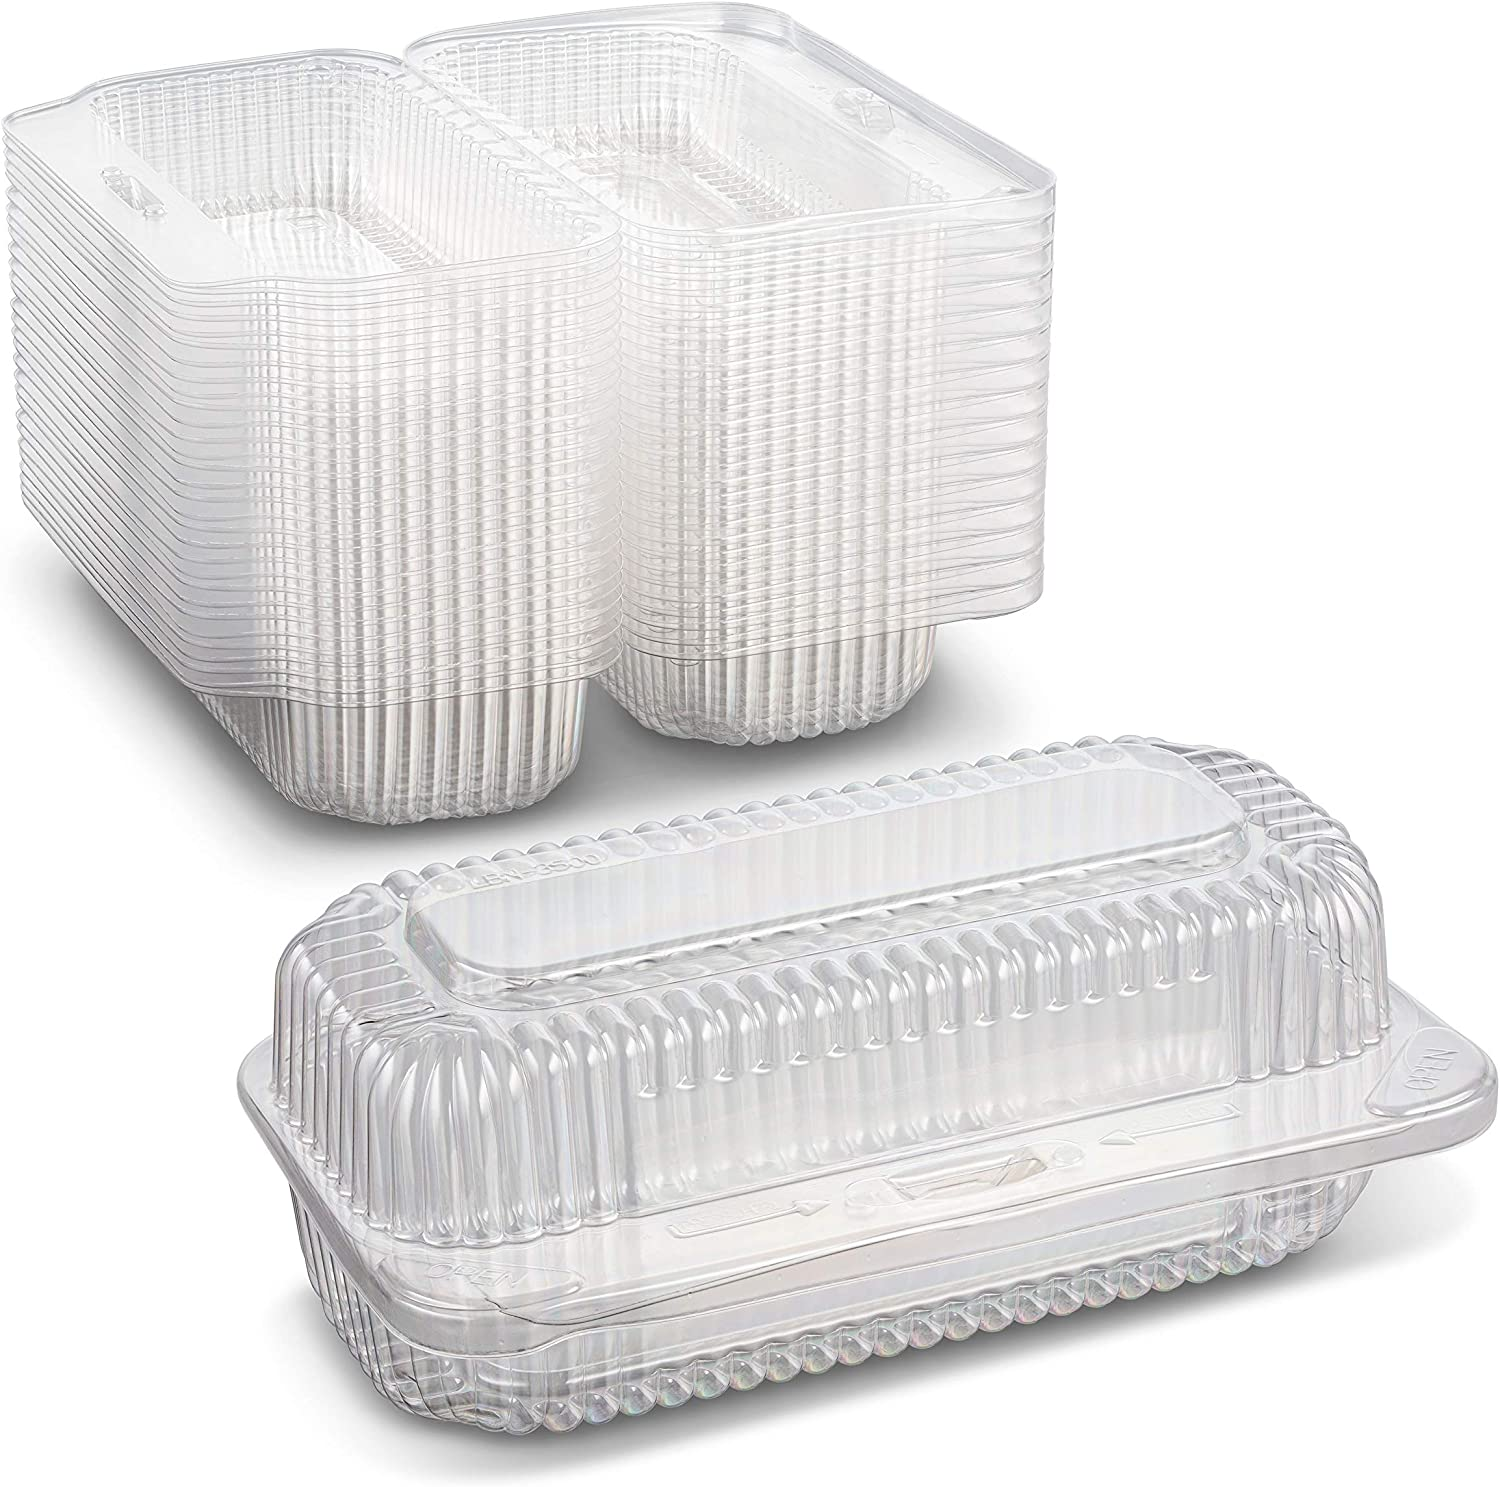 Clear Plastic Bakery or Hot Dog Container with Hinged Lid Size 6 1/2 x 2 3/4 x 2 9/16 Keep your Food Fresh and Tasty by MT Products (30 Pieces)